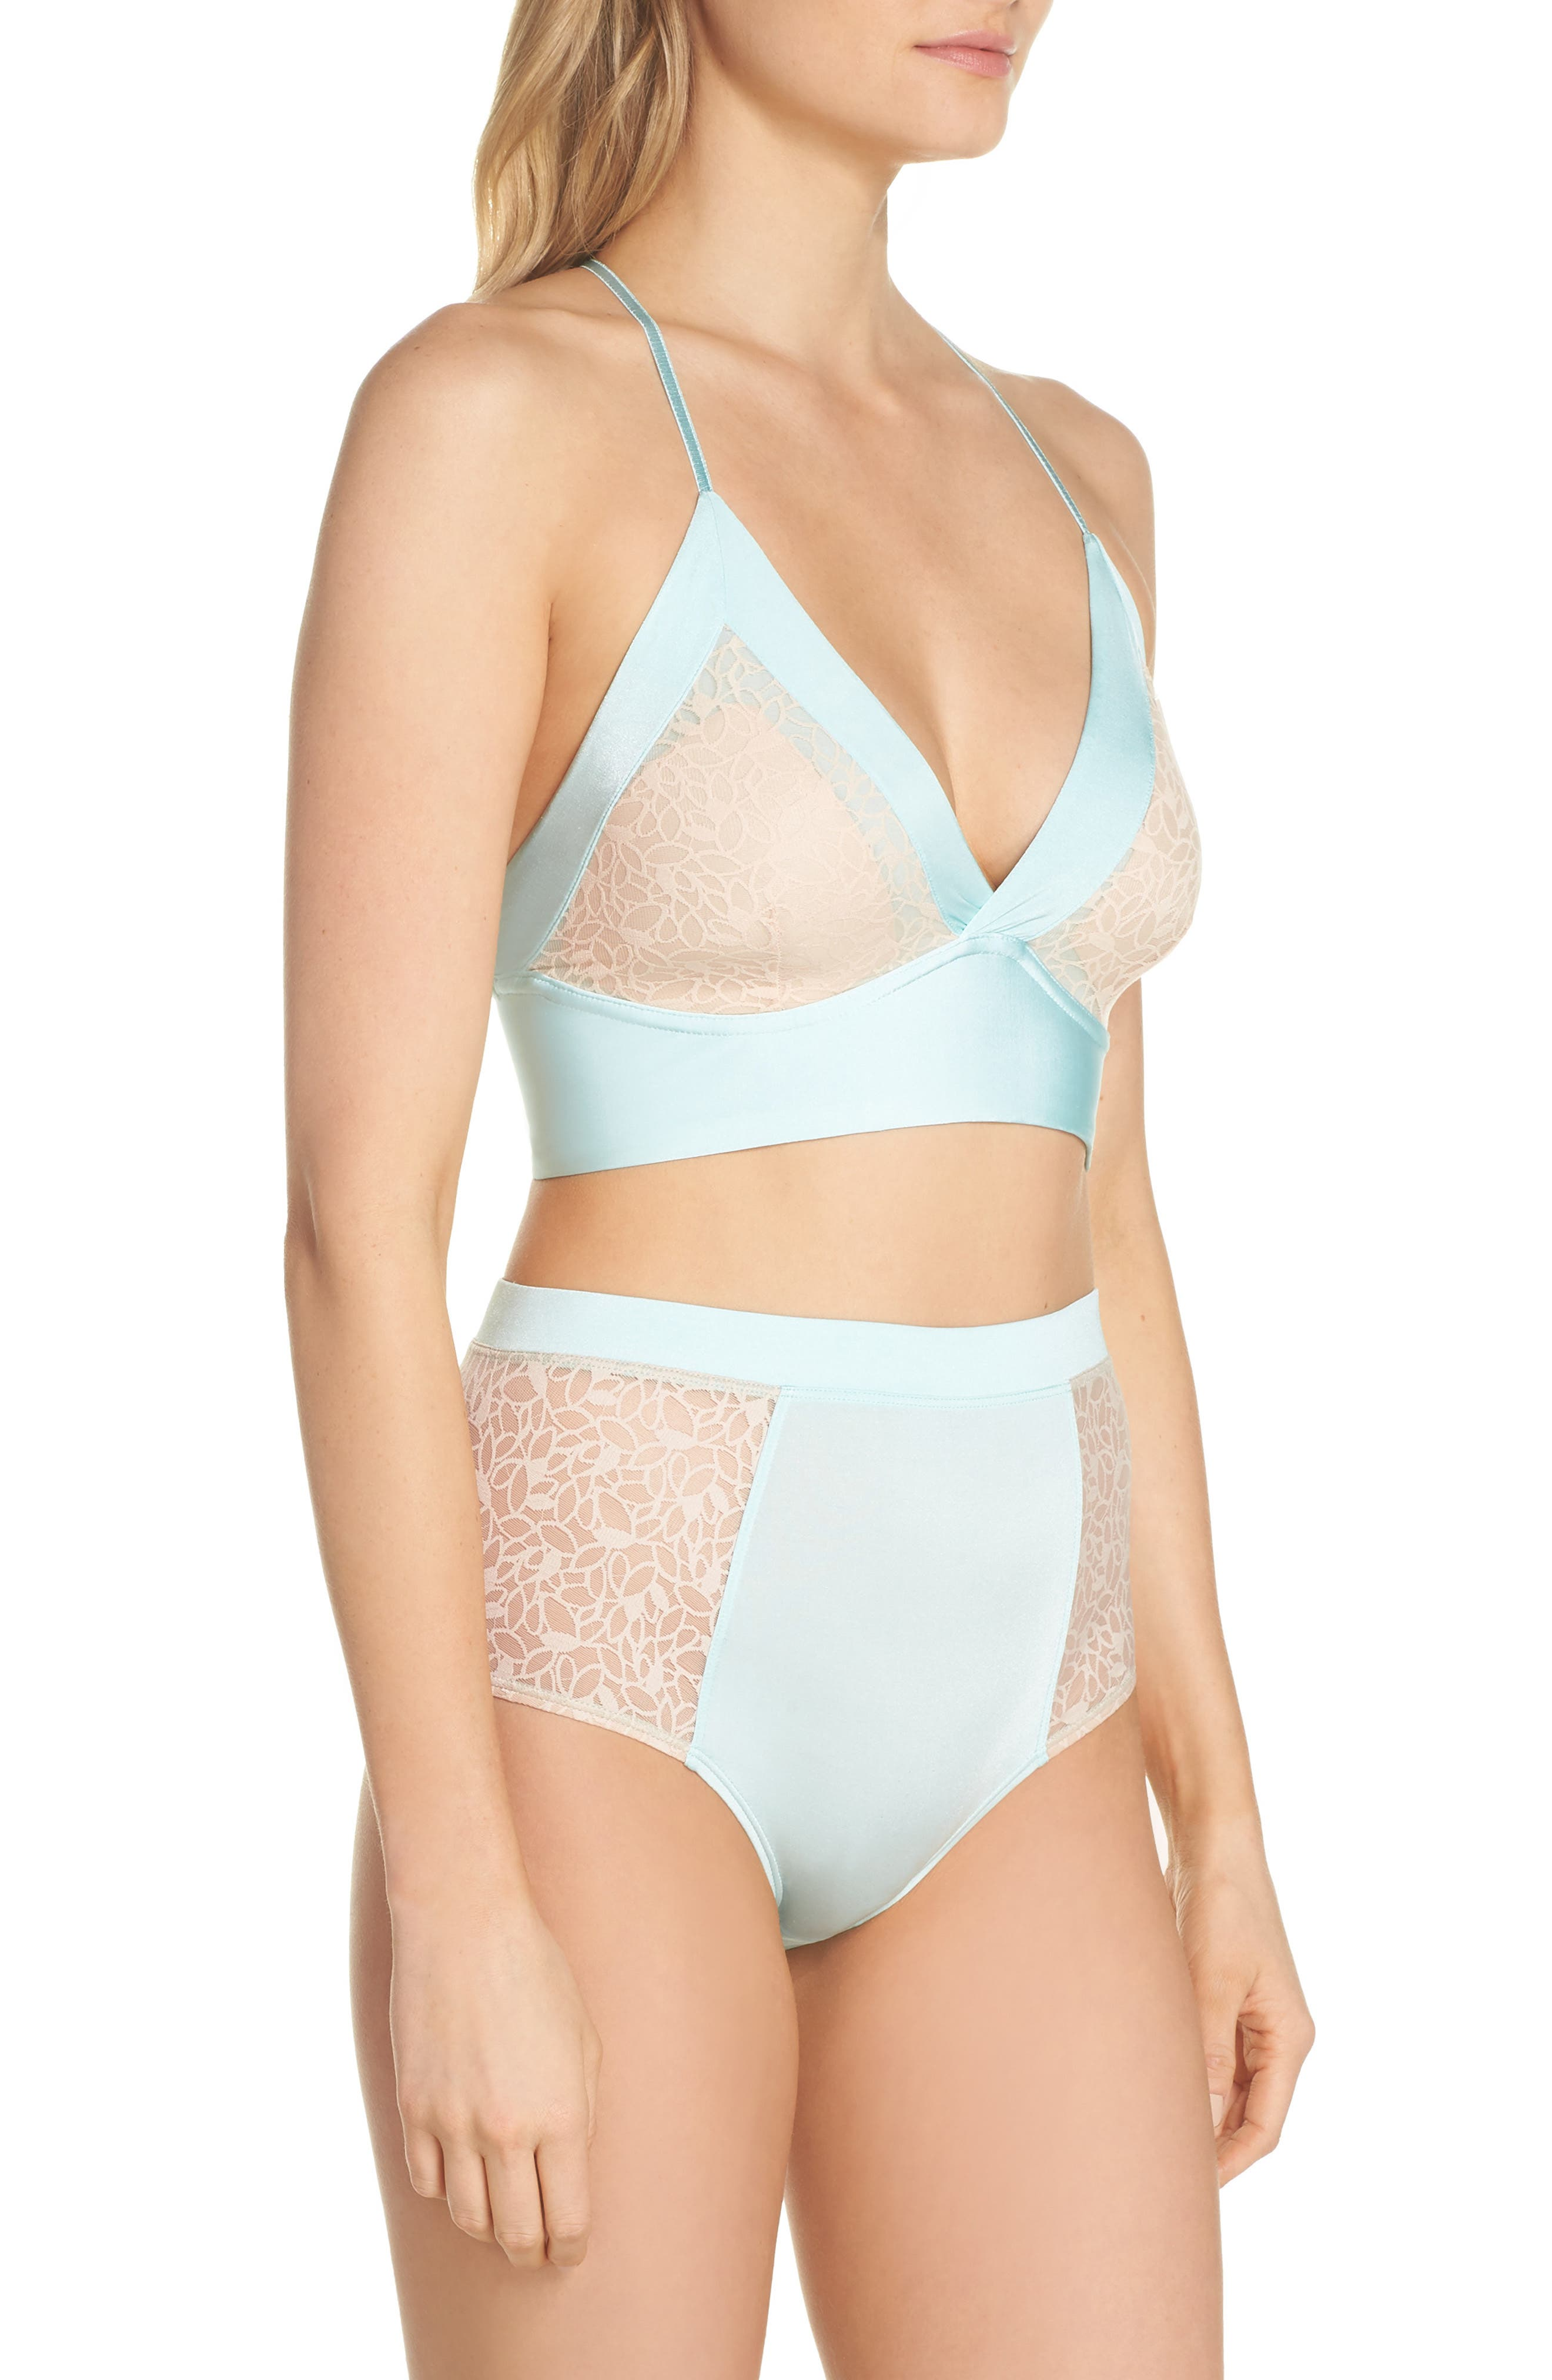 Satin Lace Wireless Bralette,                             Alternate thumbnail 6, color,                             Blue Plume/ Pink Dust